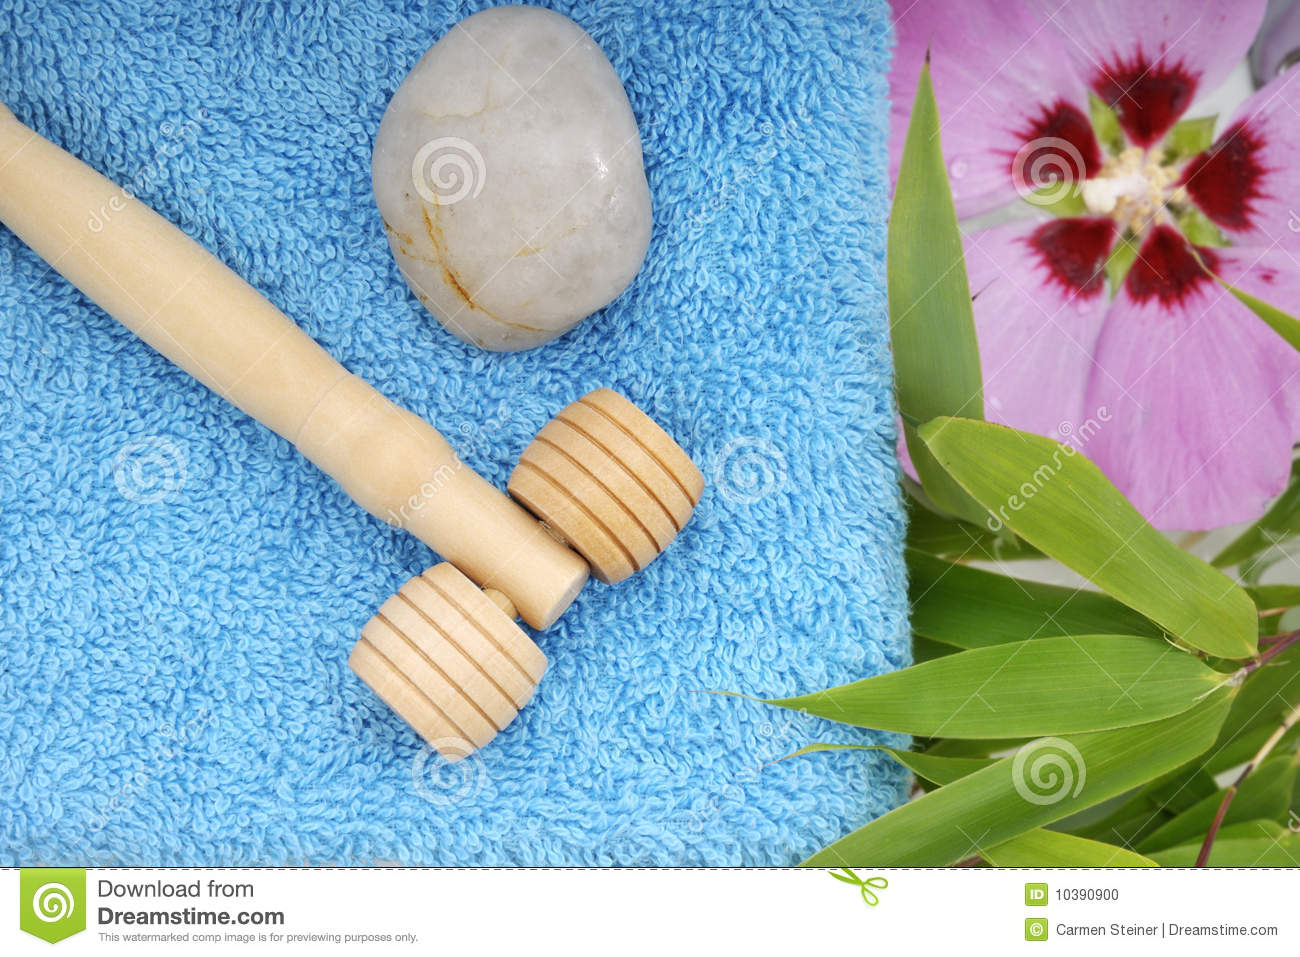 Massage therapy tools stock photo. Image of flower, wooden ...